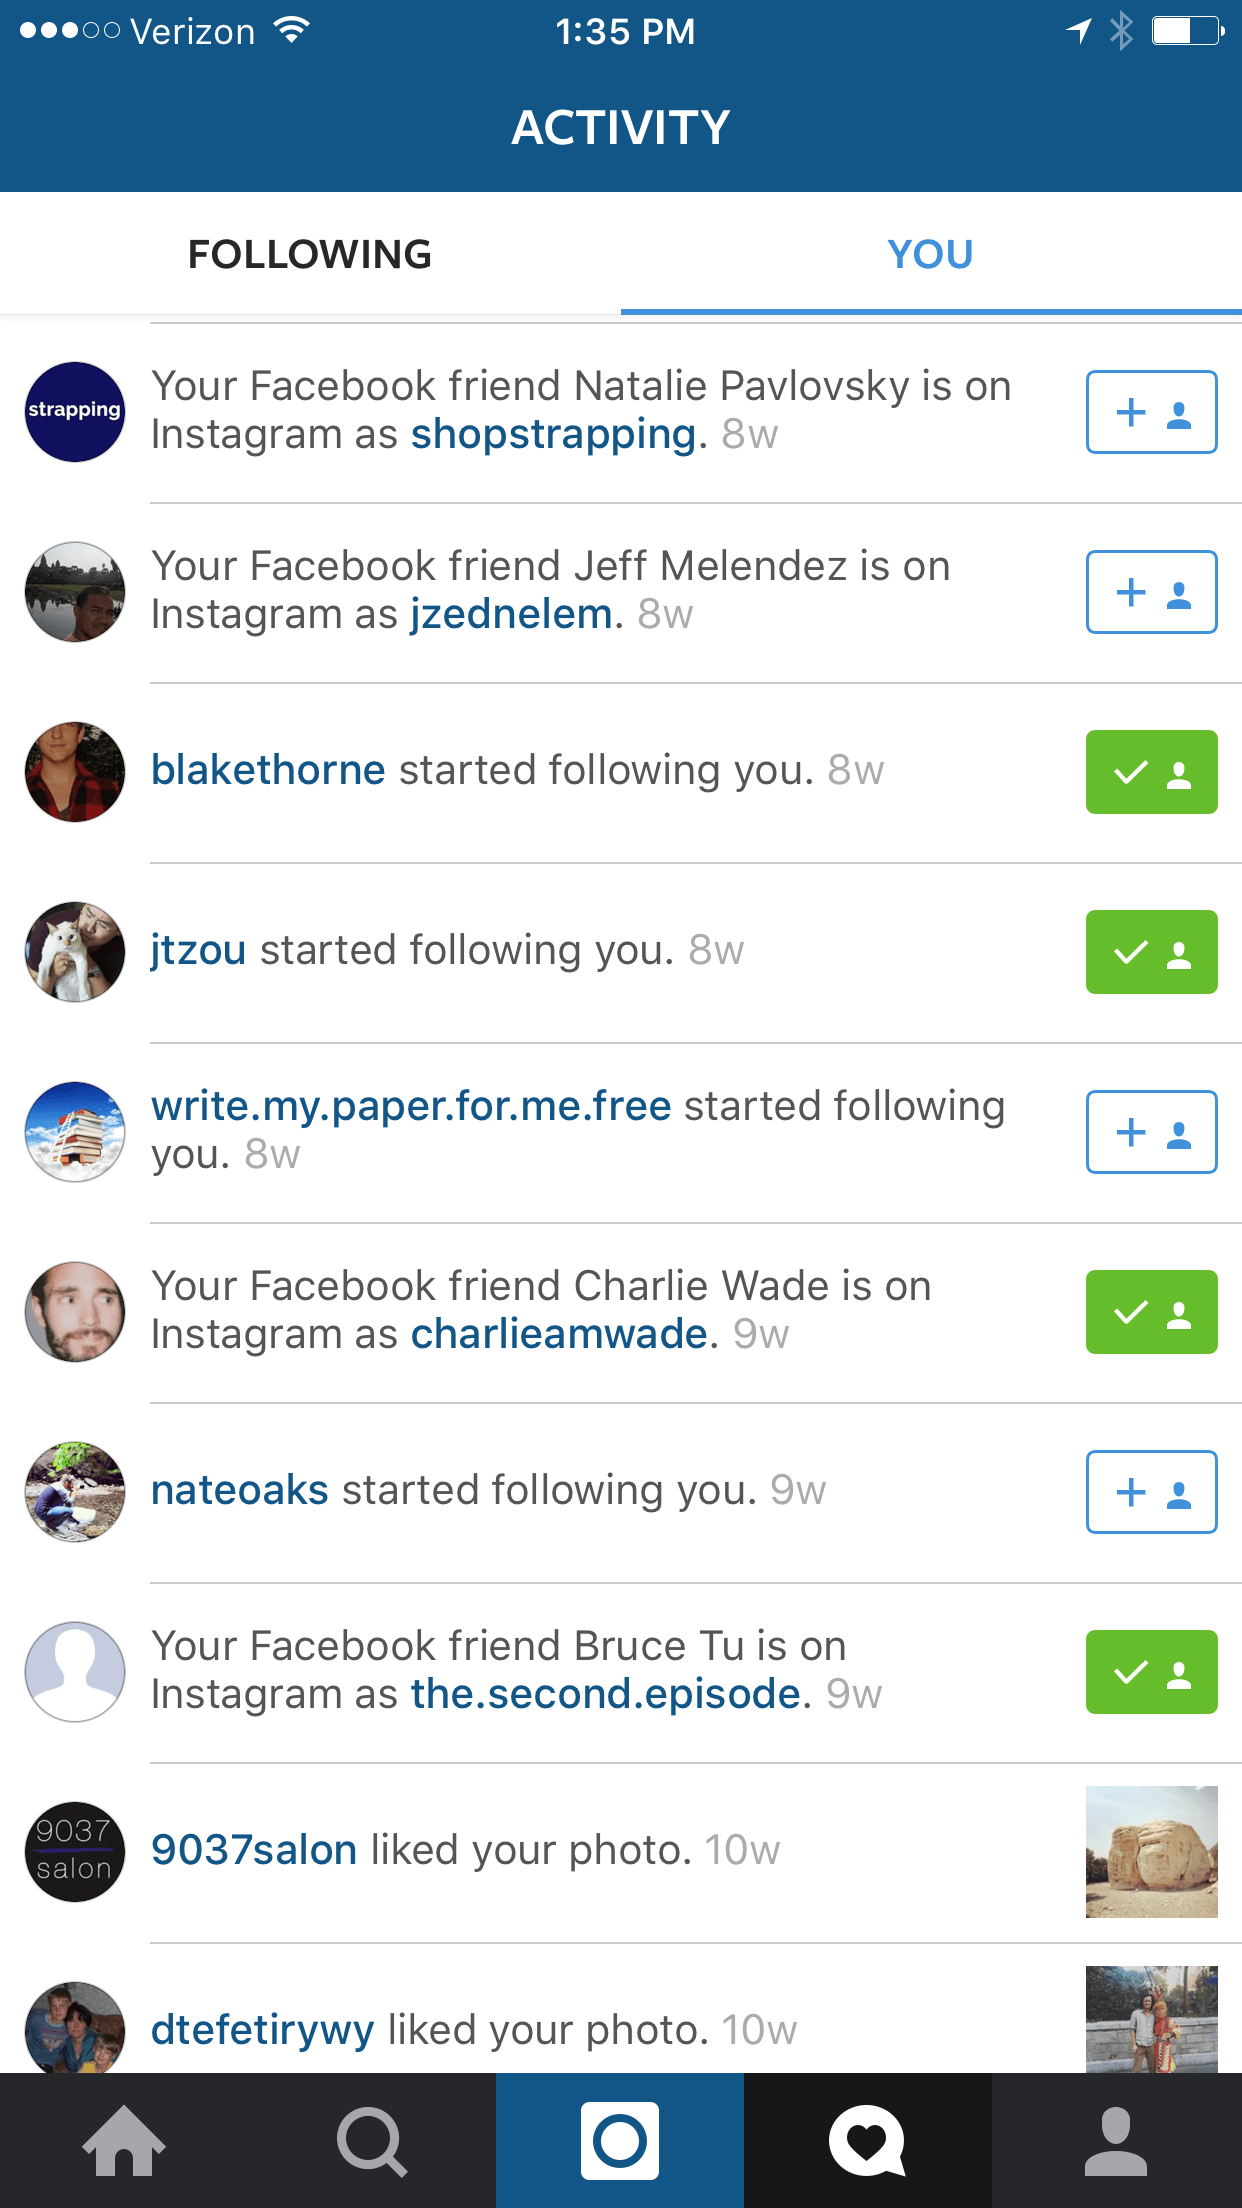 Instagram Notifications based on Social Profiles